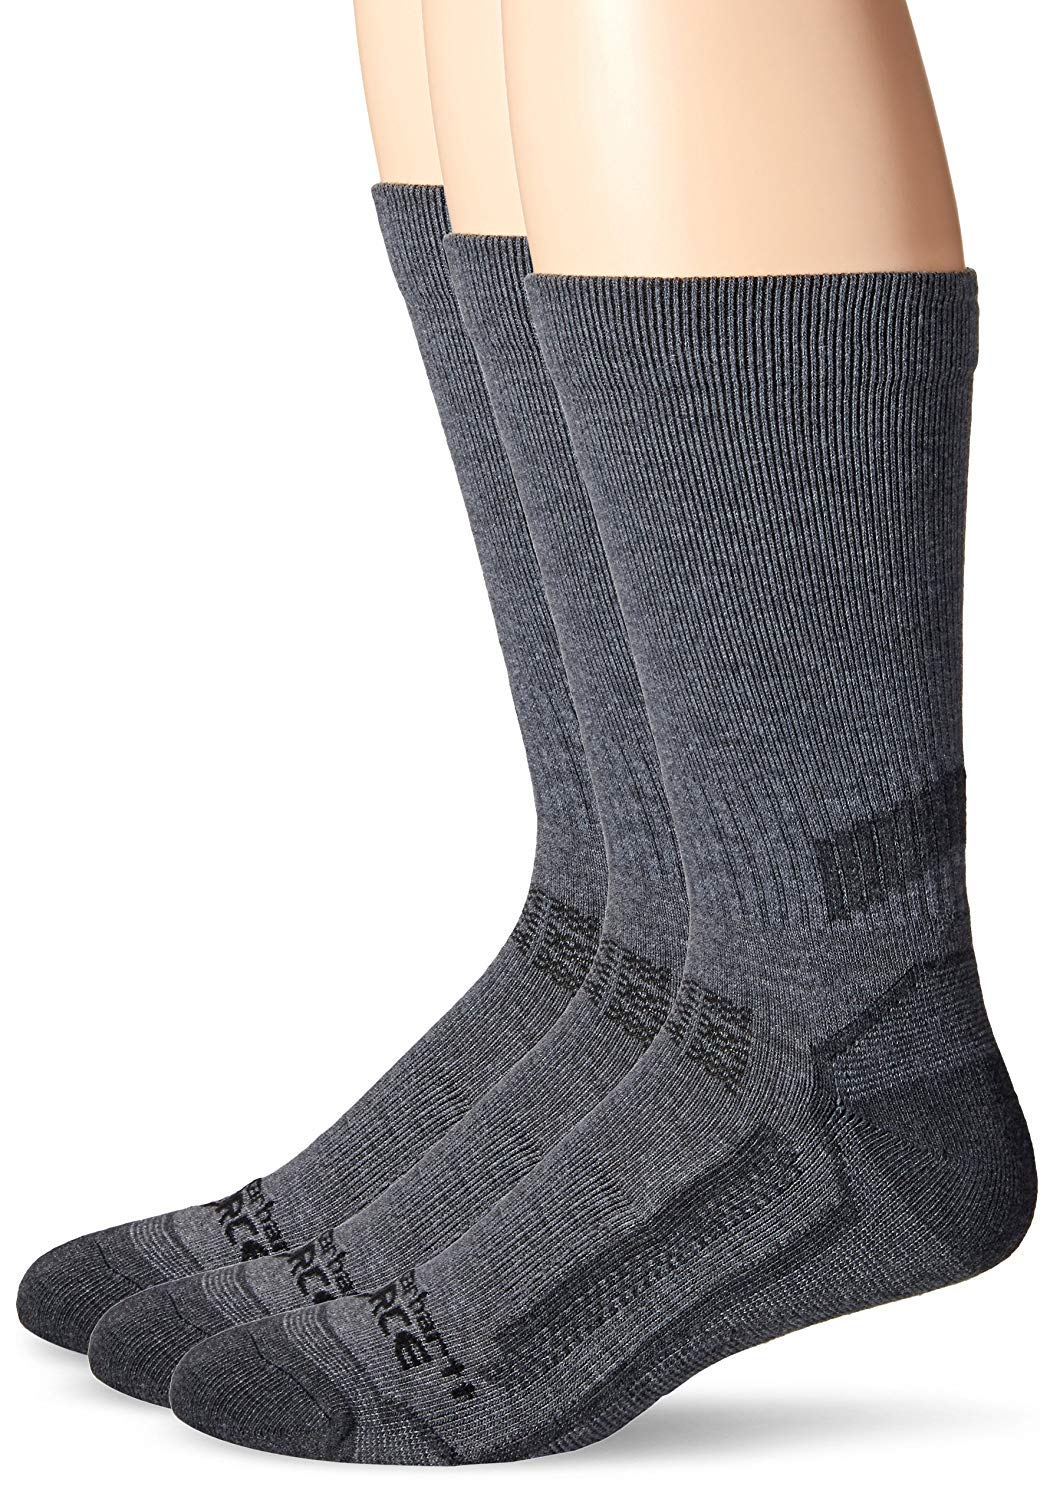 11-15 Gray Carhartt All-season Cotton Crew Work Socks Shoe Size